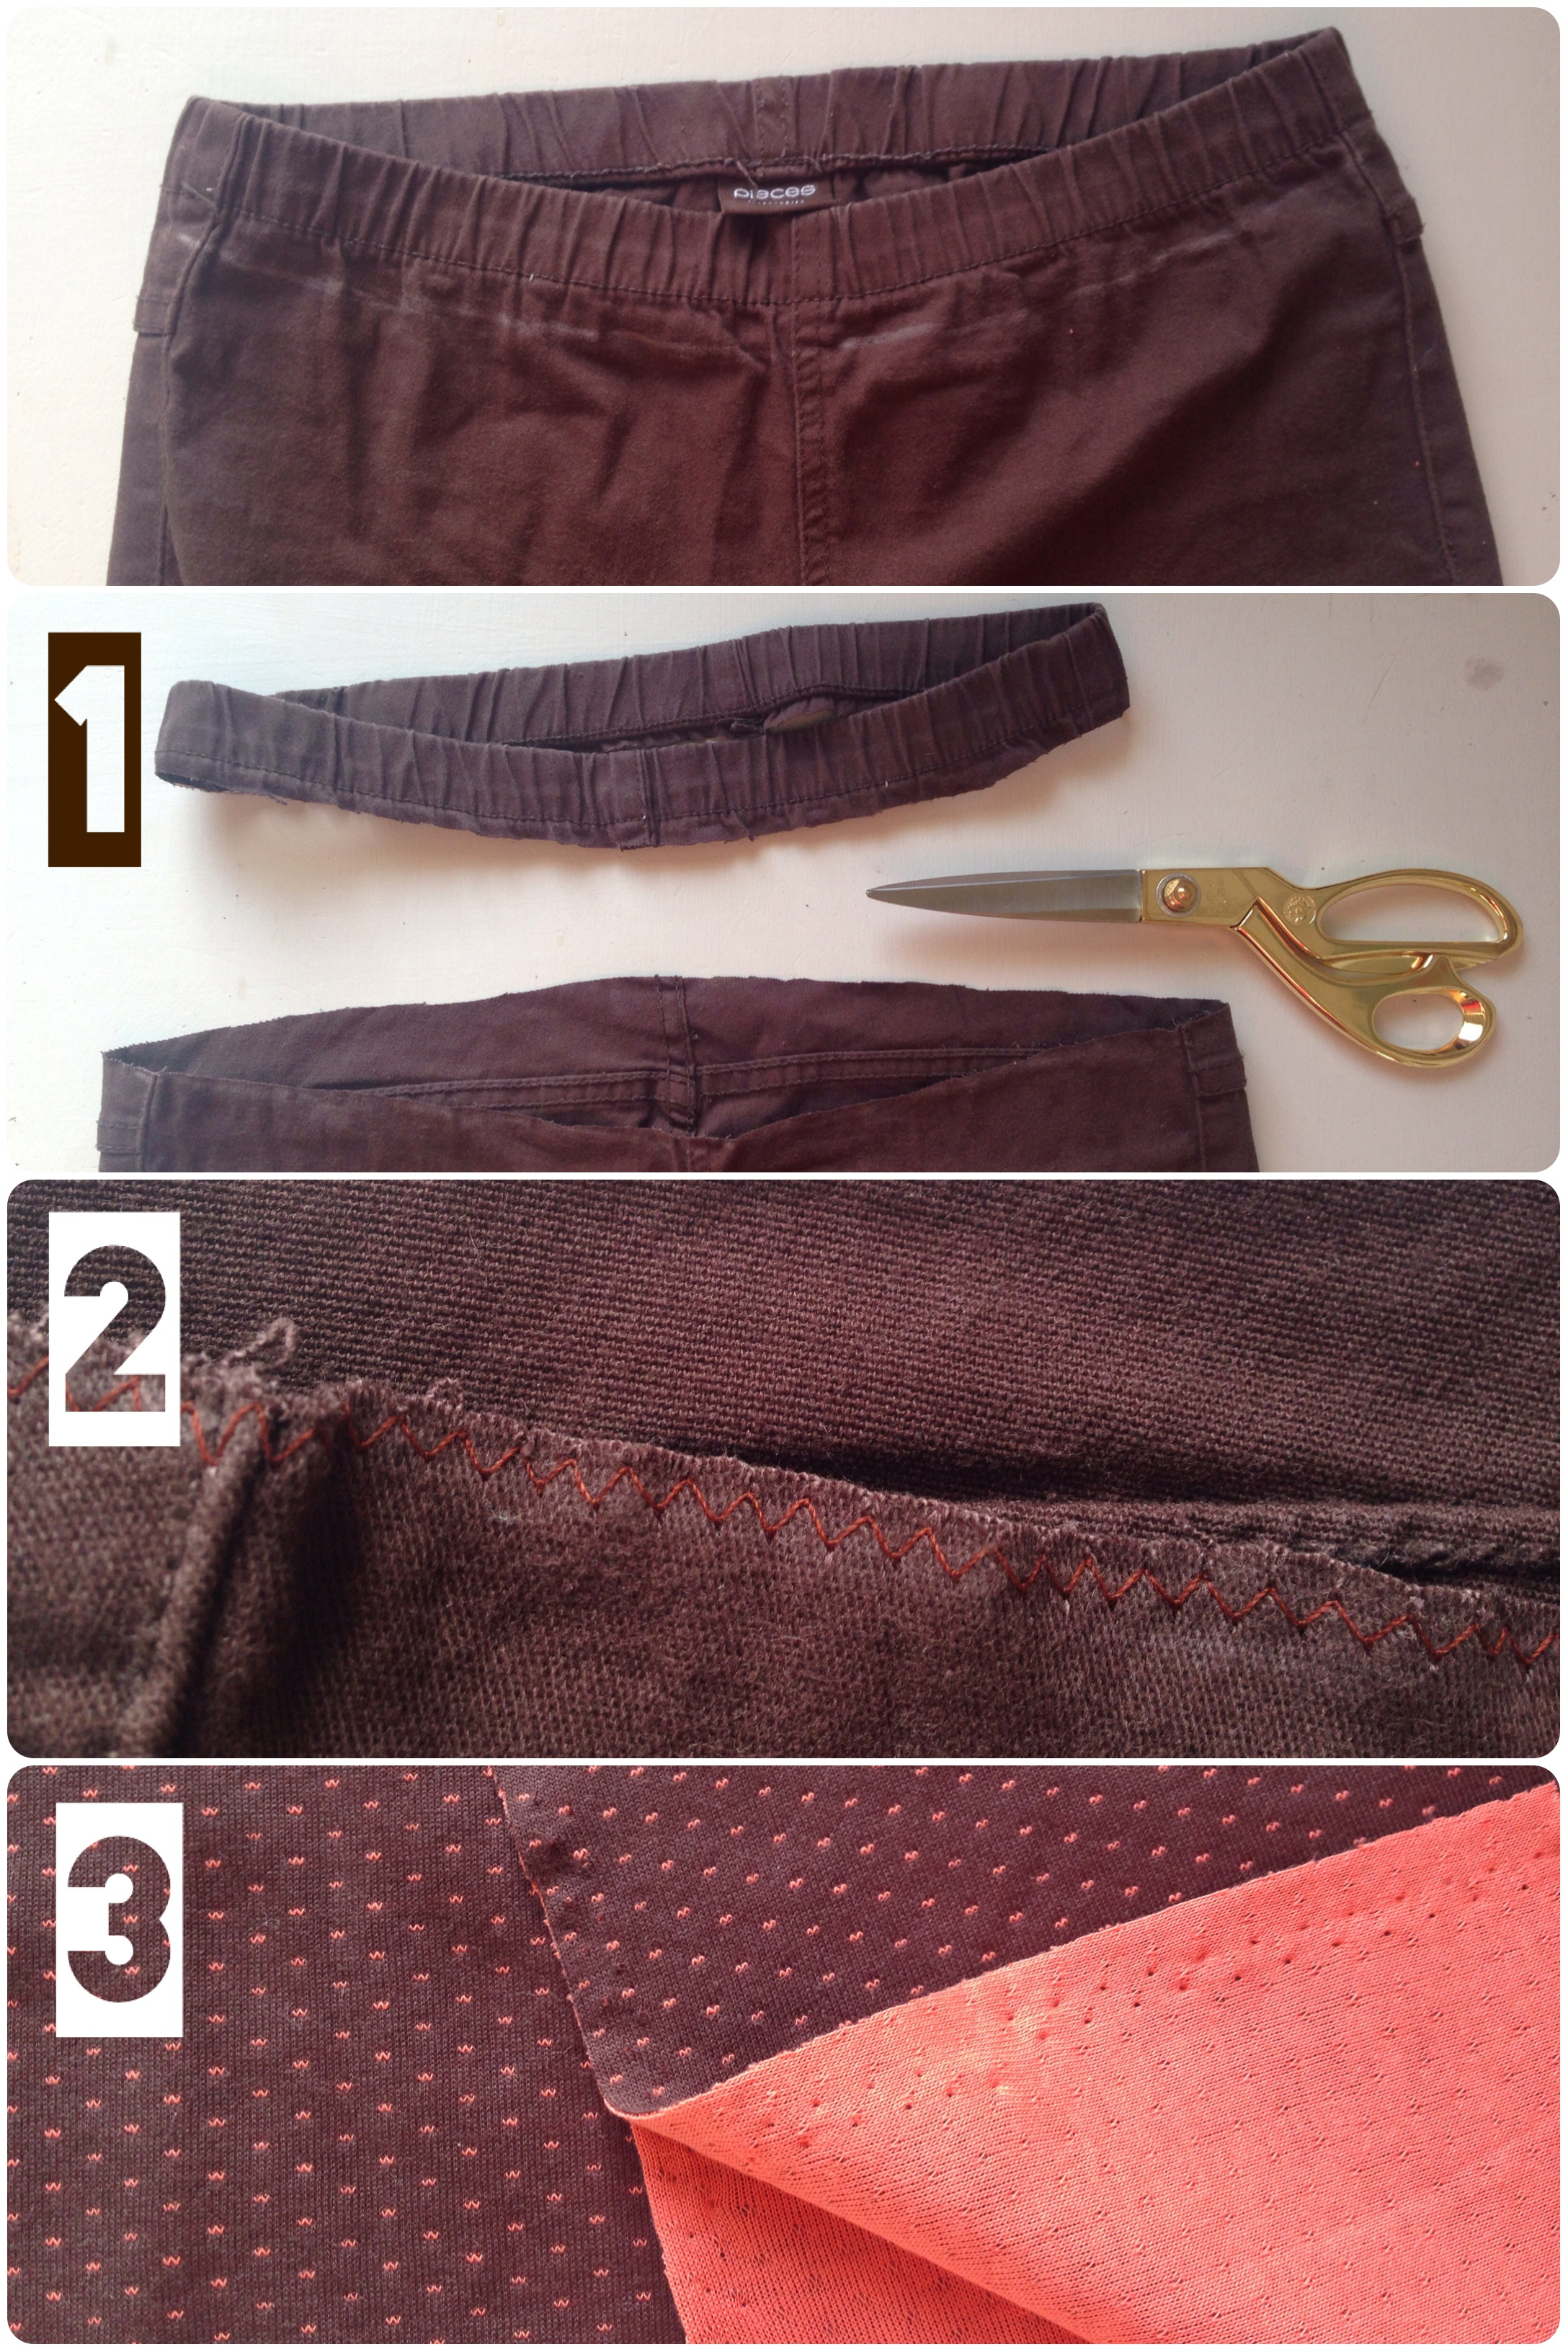 Turn your pants into maternity pants following this tutorial.